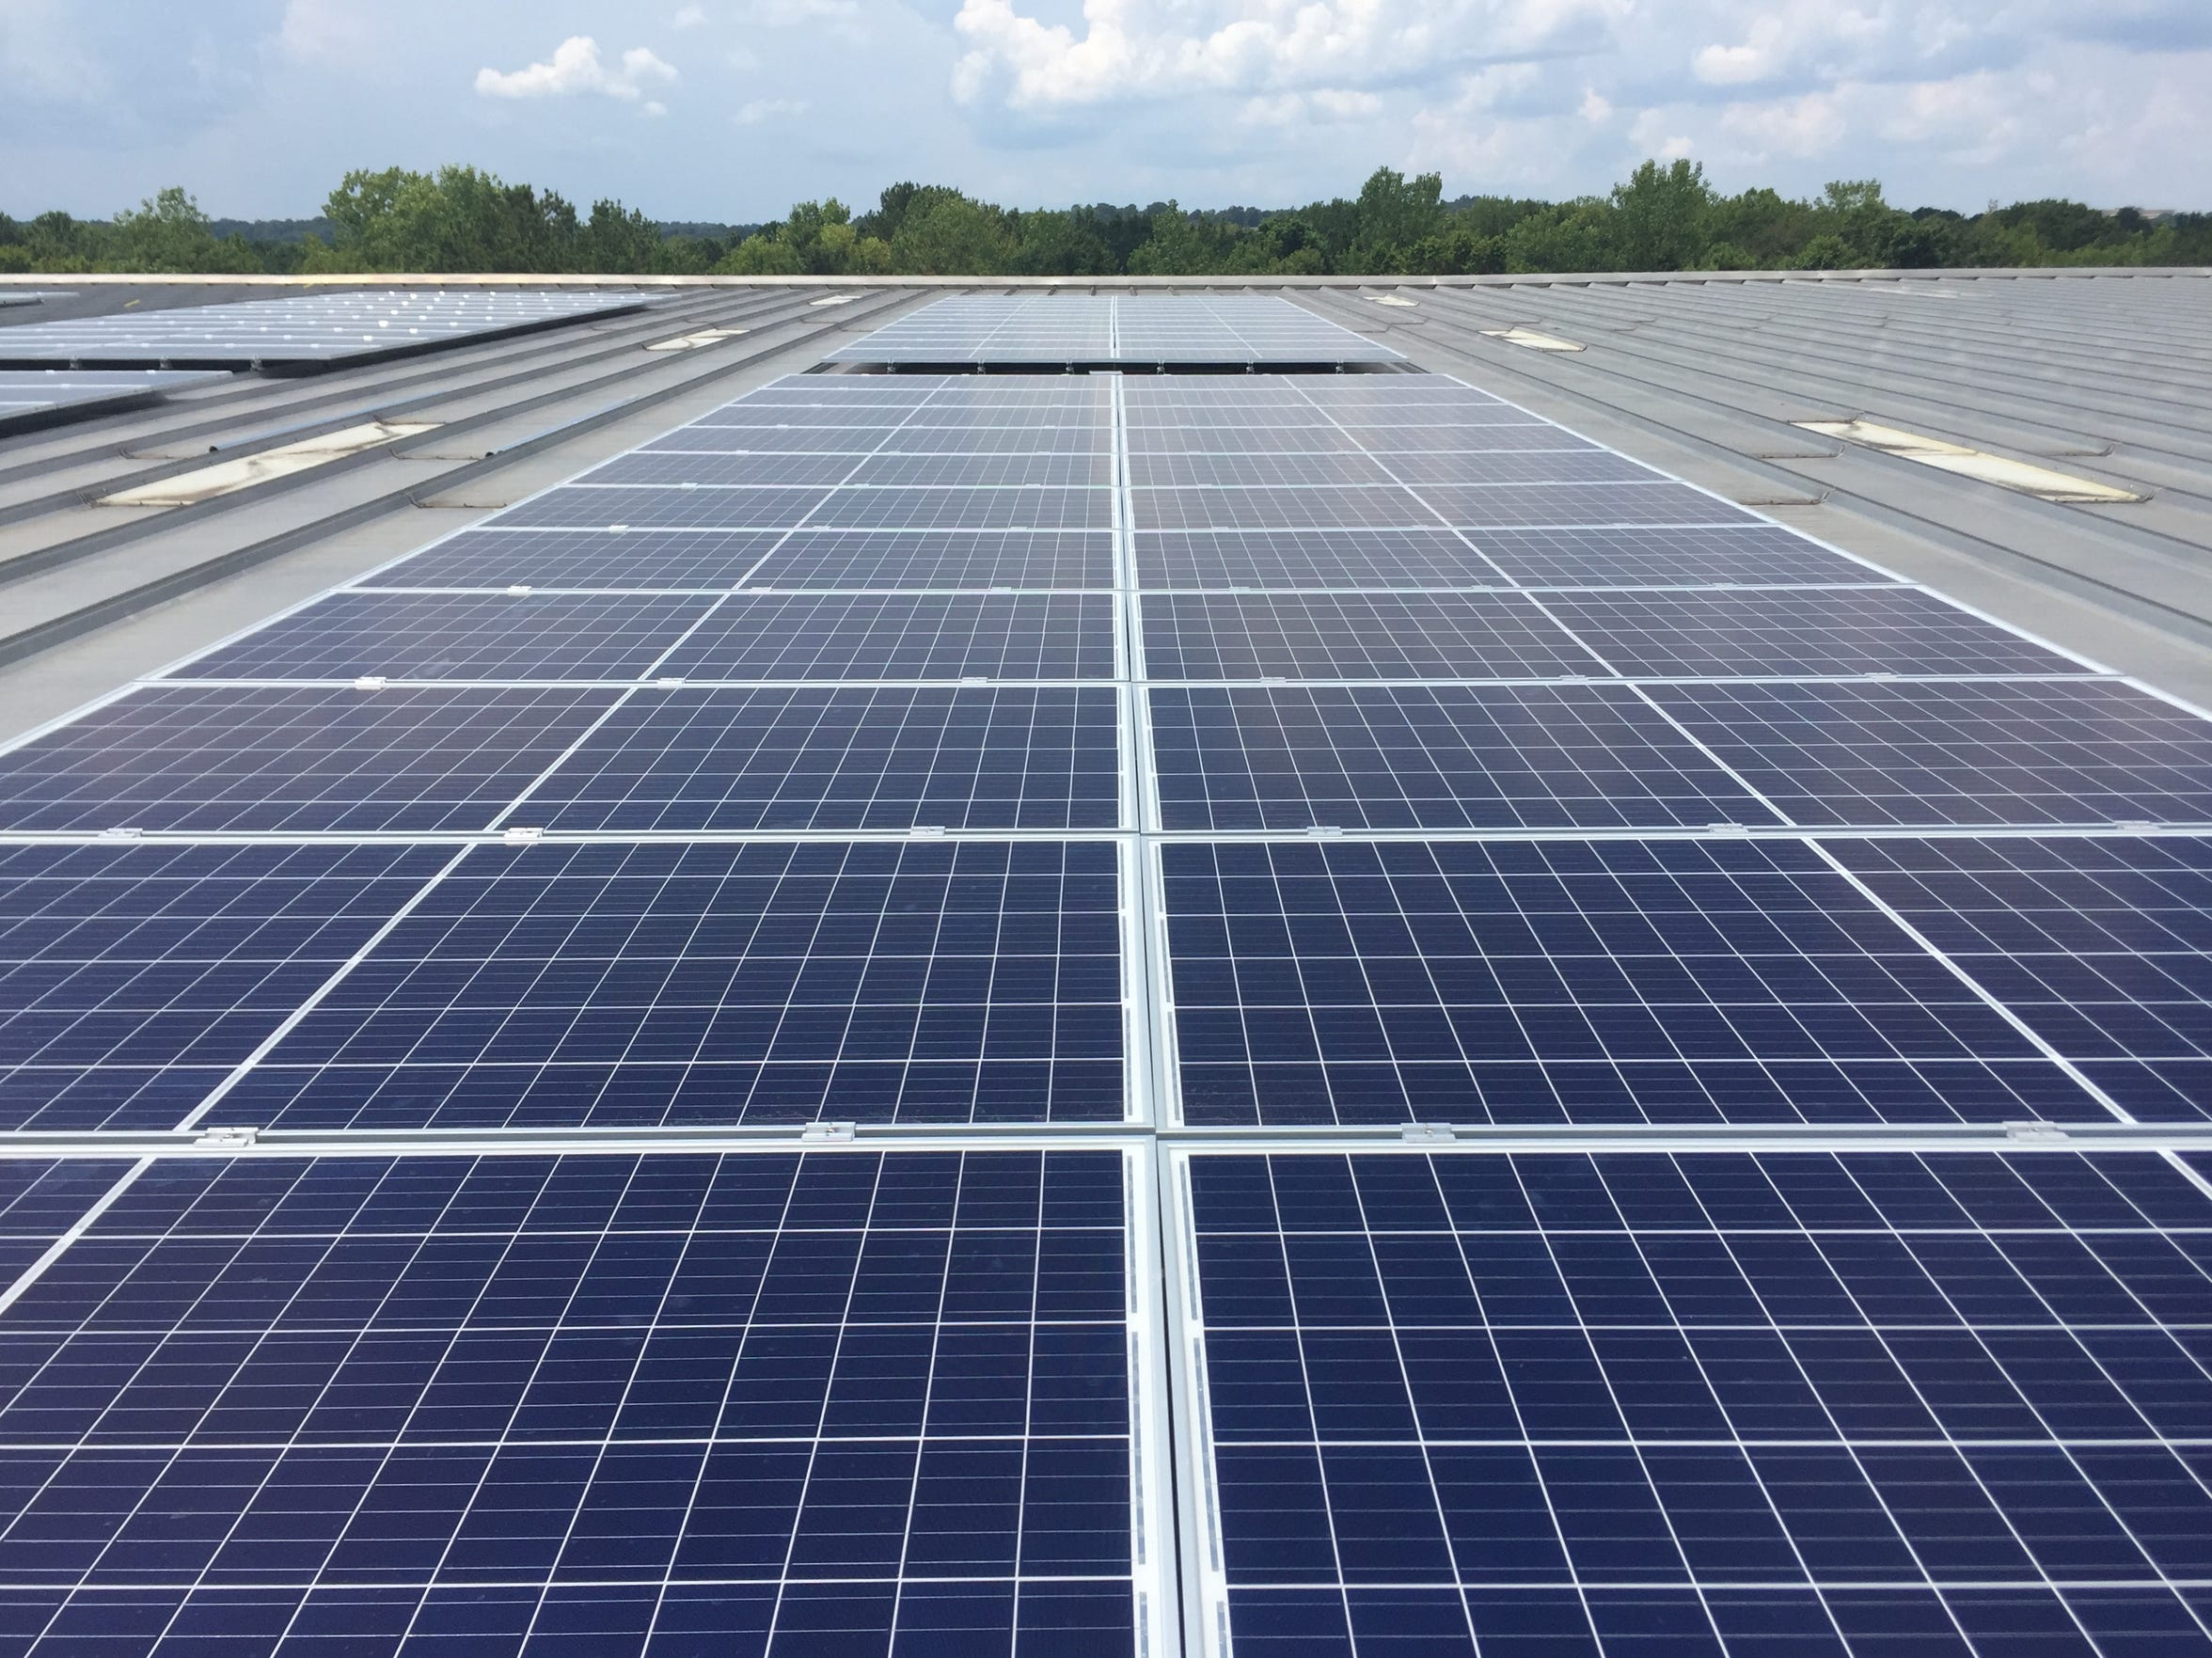 Solar panels on a warehouse owned by Joe Piper, Inc. in Midfield, Ala. CEO Ann Piper says she expects the panels to save about $5,000 a month in electric bills.